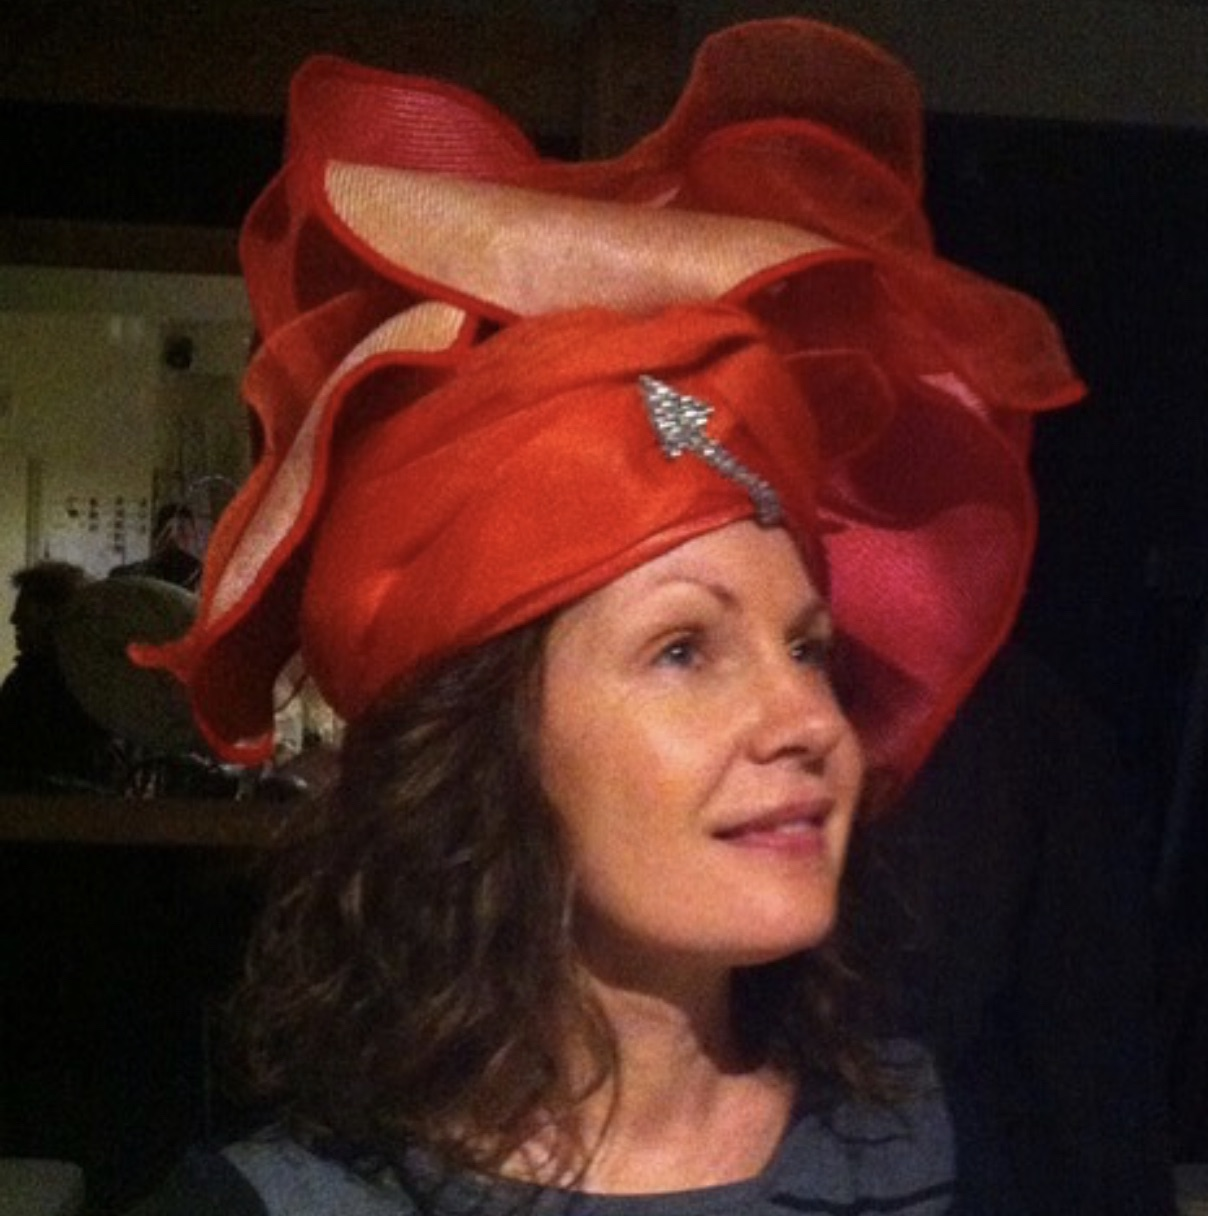 Drapped red hat by Waltraud Reiner